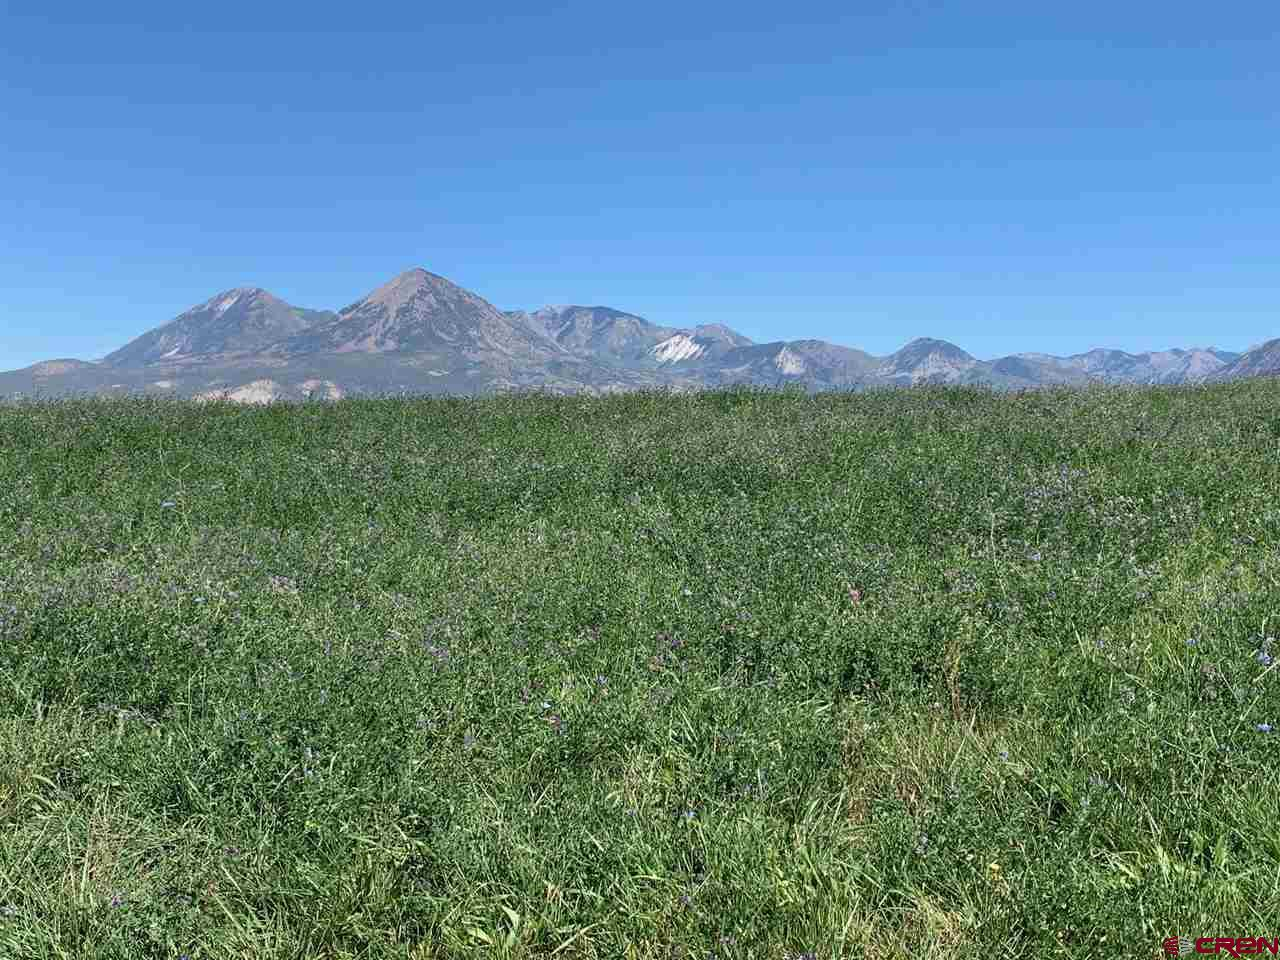 Included are 90 acre feet of Deeded Smith Fork Project Water. Two pivot systems with Senior Water Rights. Good soil. No deed restrictions or covenants. Large hay barn or machine shed, corrals plus sweeping views of the West Elks.